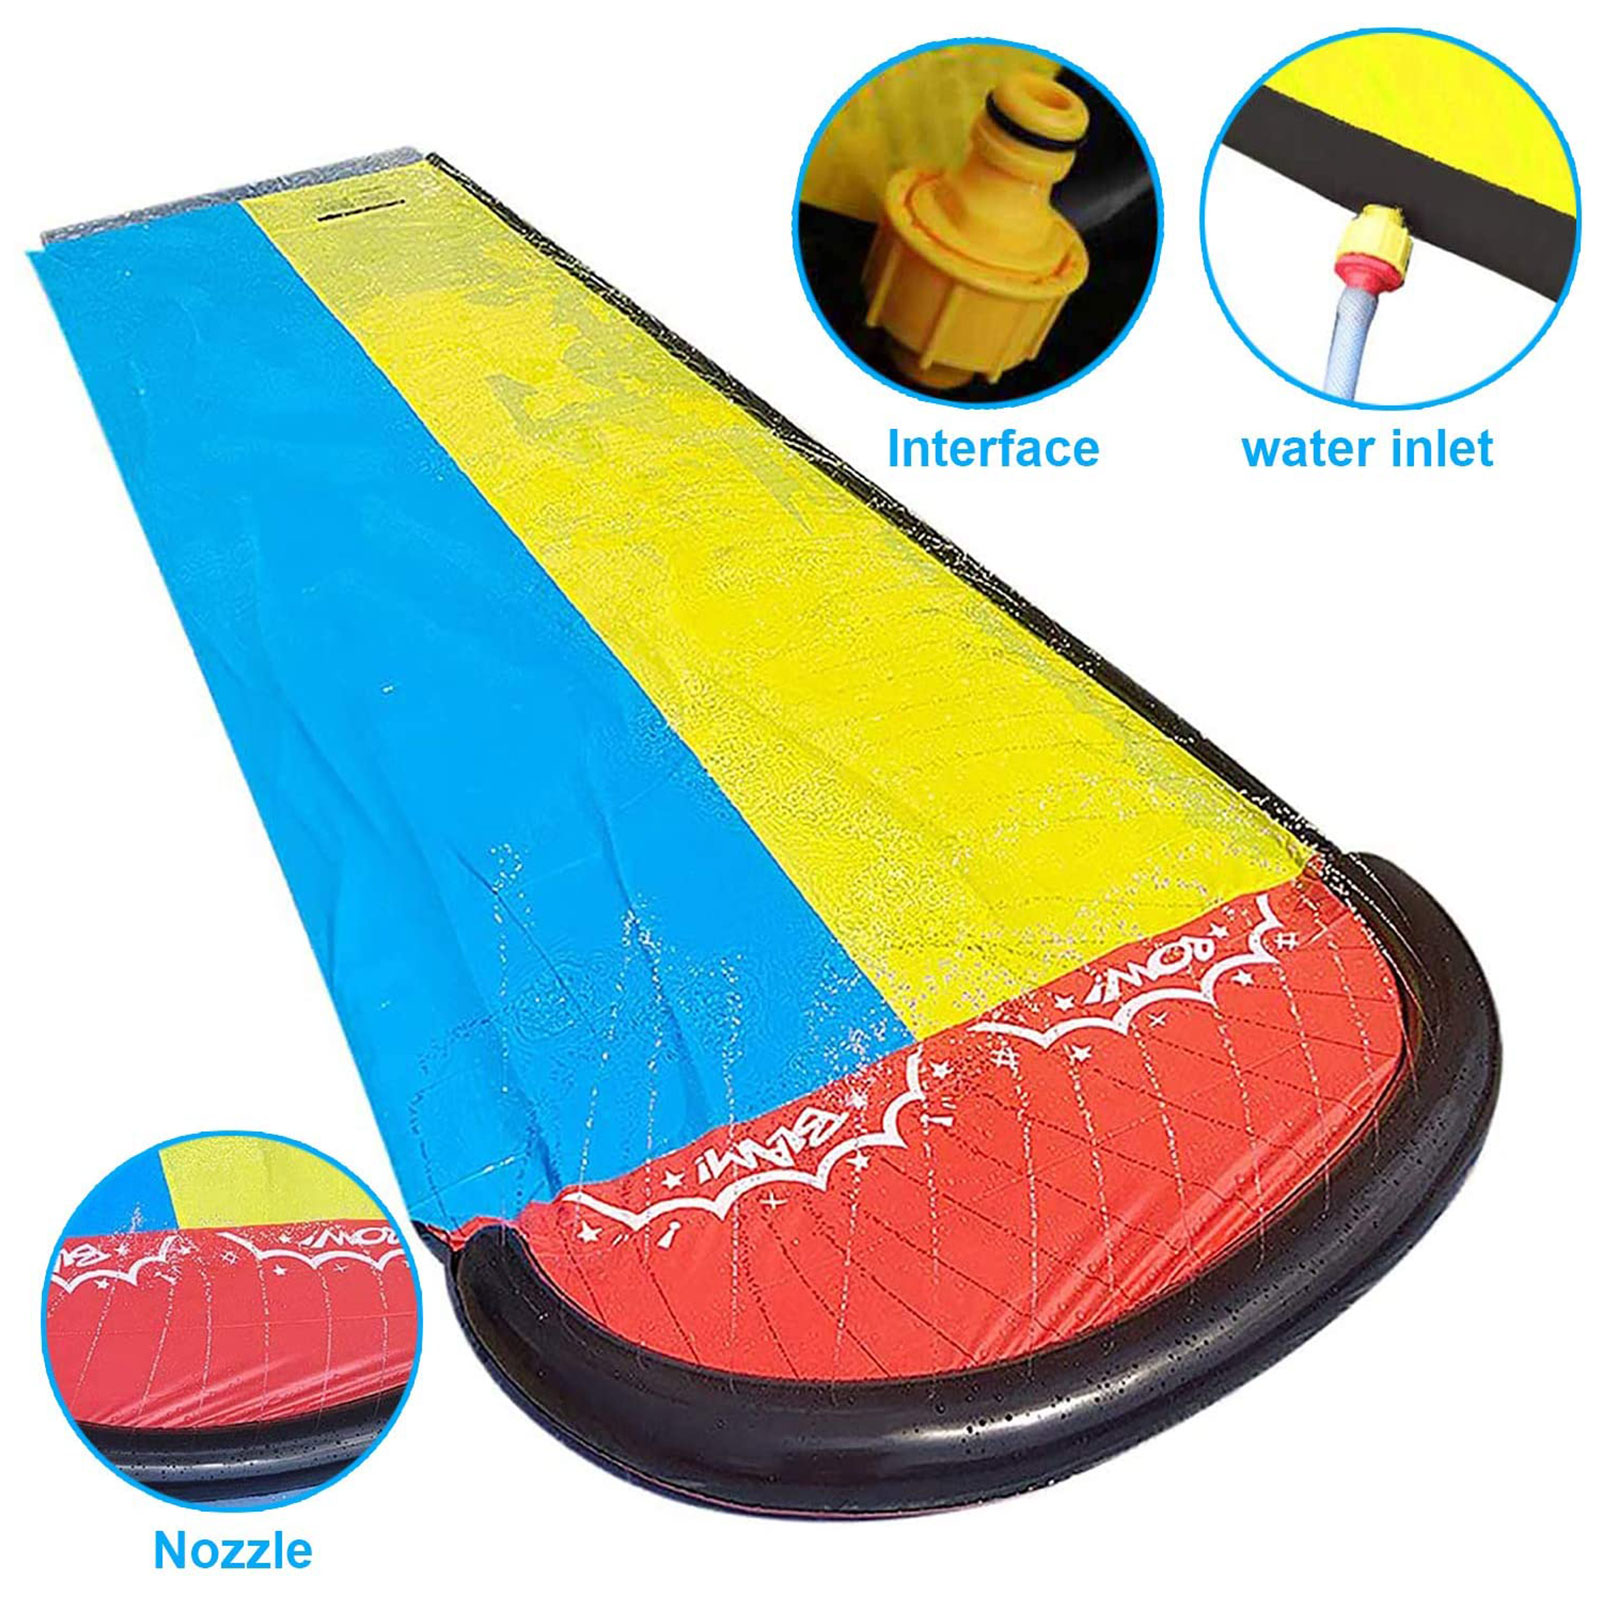 Inflatable Lawn Water Slide Pools Sprinkler Summer Swimming Pool PVC Outdoor Backyard Lawn Water Games Toys For Children